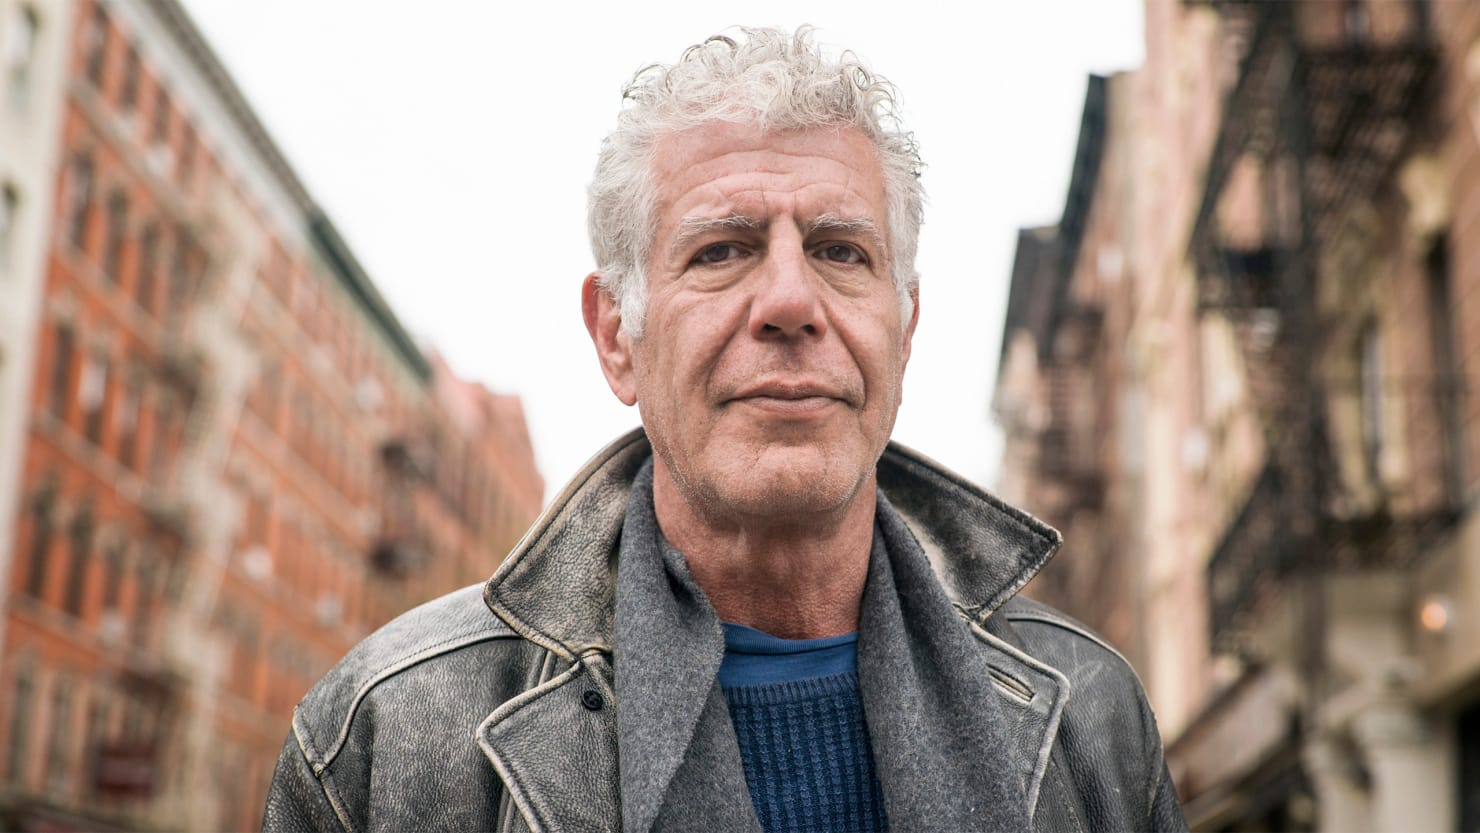 Anthony Bourdain's Final Episode: A Touching Tribute to Fellow New York Misfits